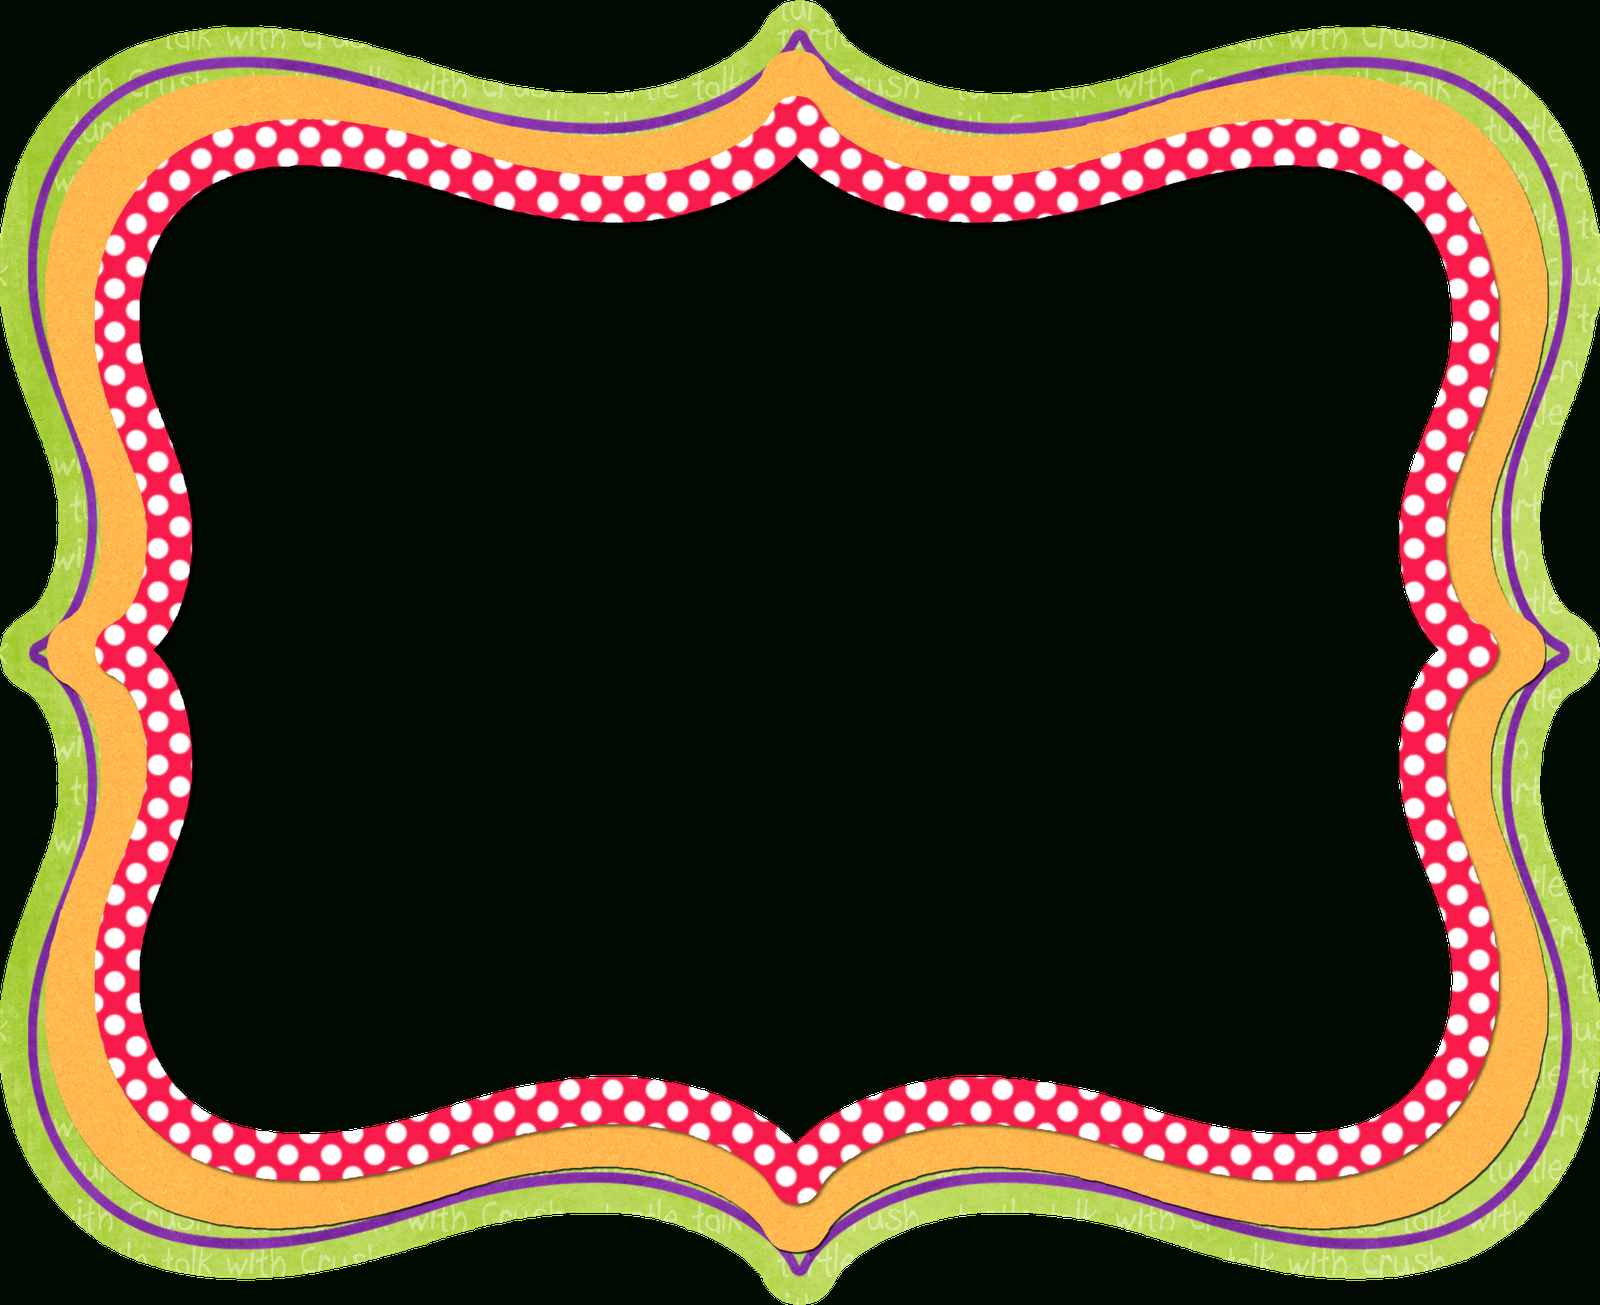 Free Printable Cliparts Borders, Download Free Clip Art, Free Clip - Free Printable Borders And Frames